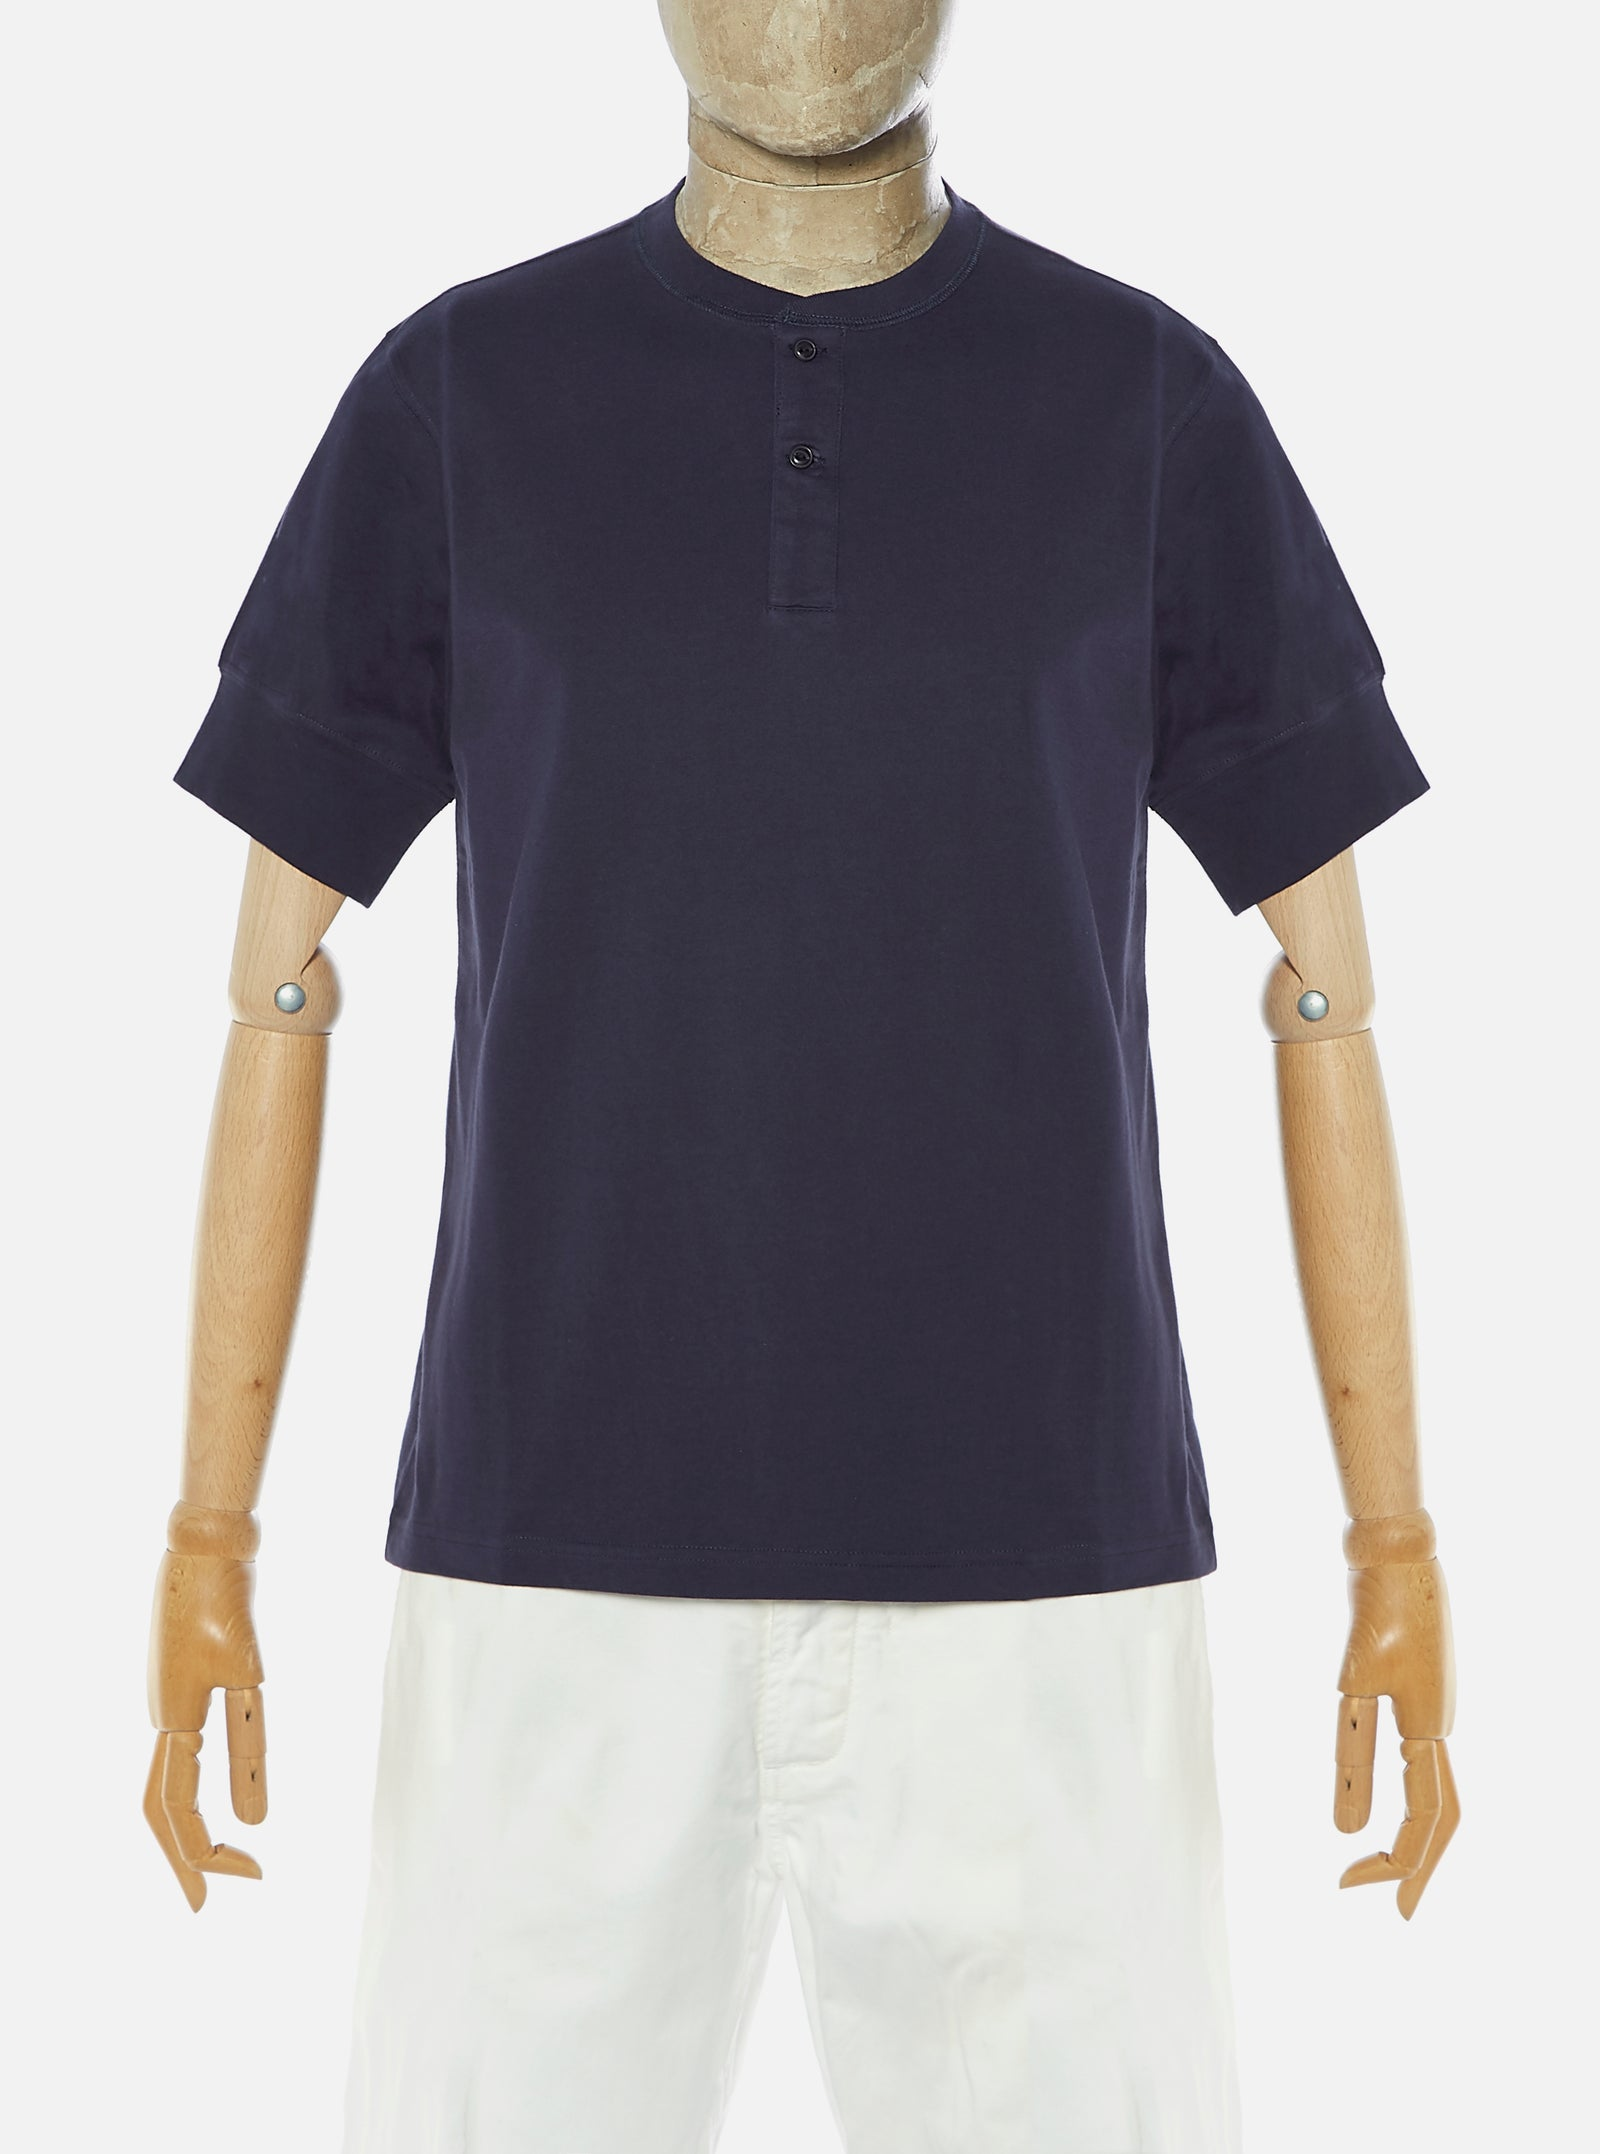 Universal Works S/S Eaton Shirt in Navy Single Jersey